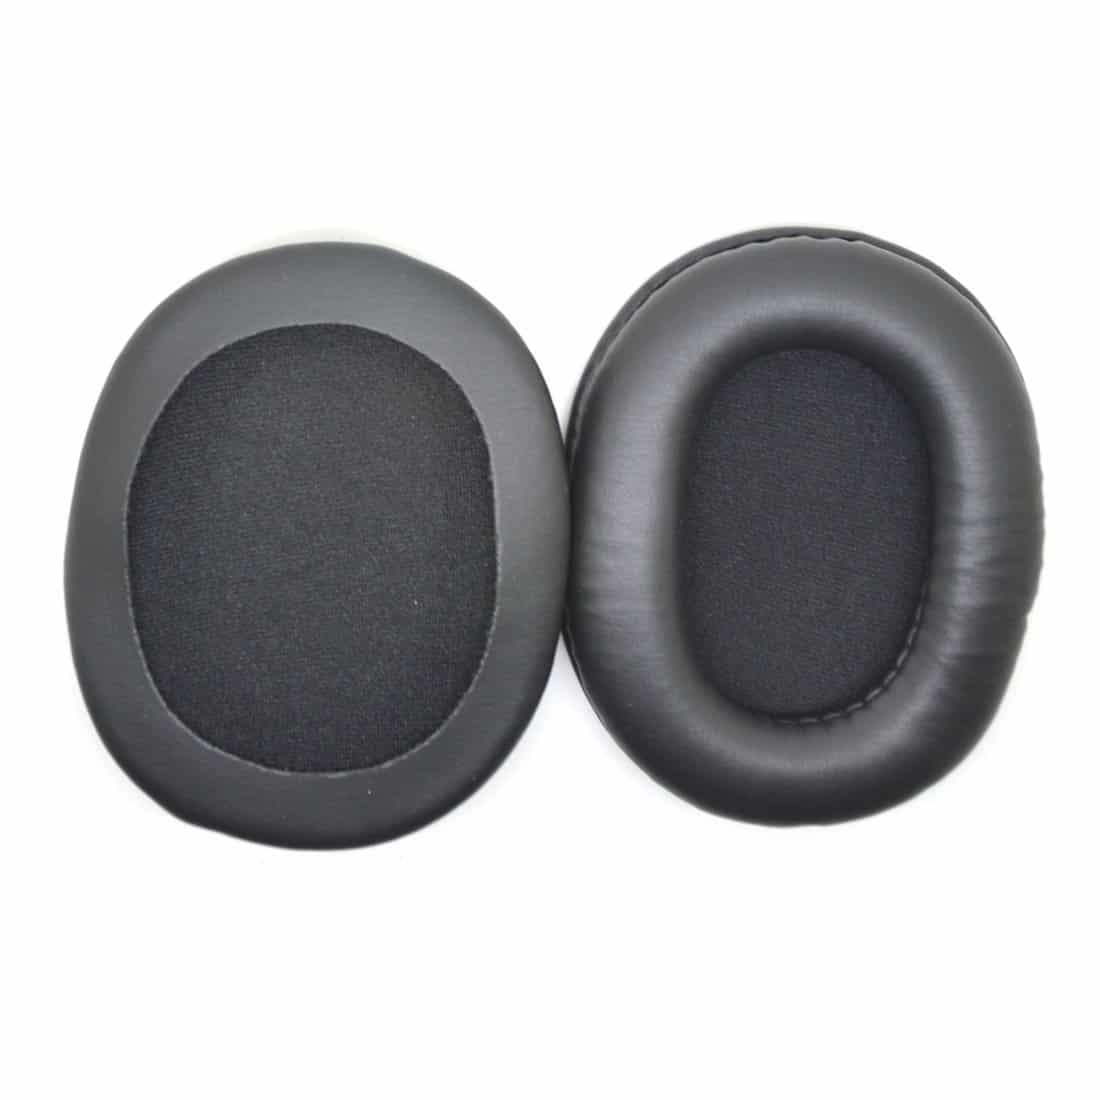 Sony MDR7506 Black Ear Pads